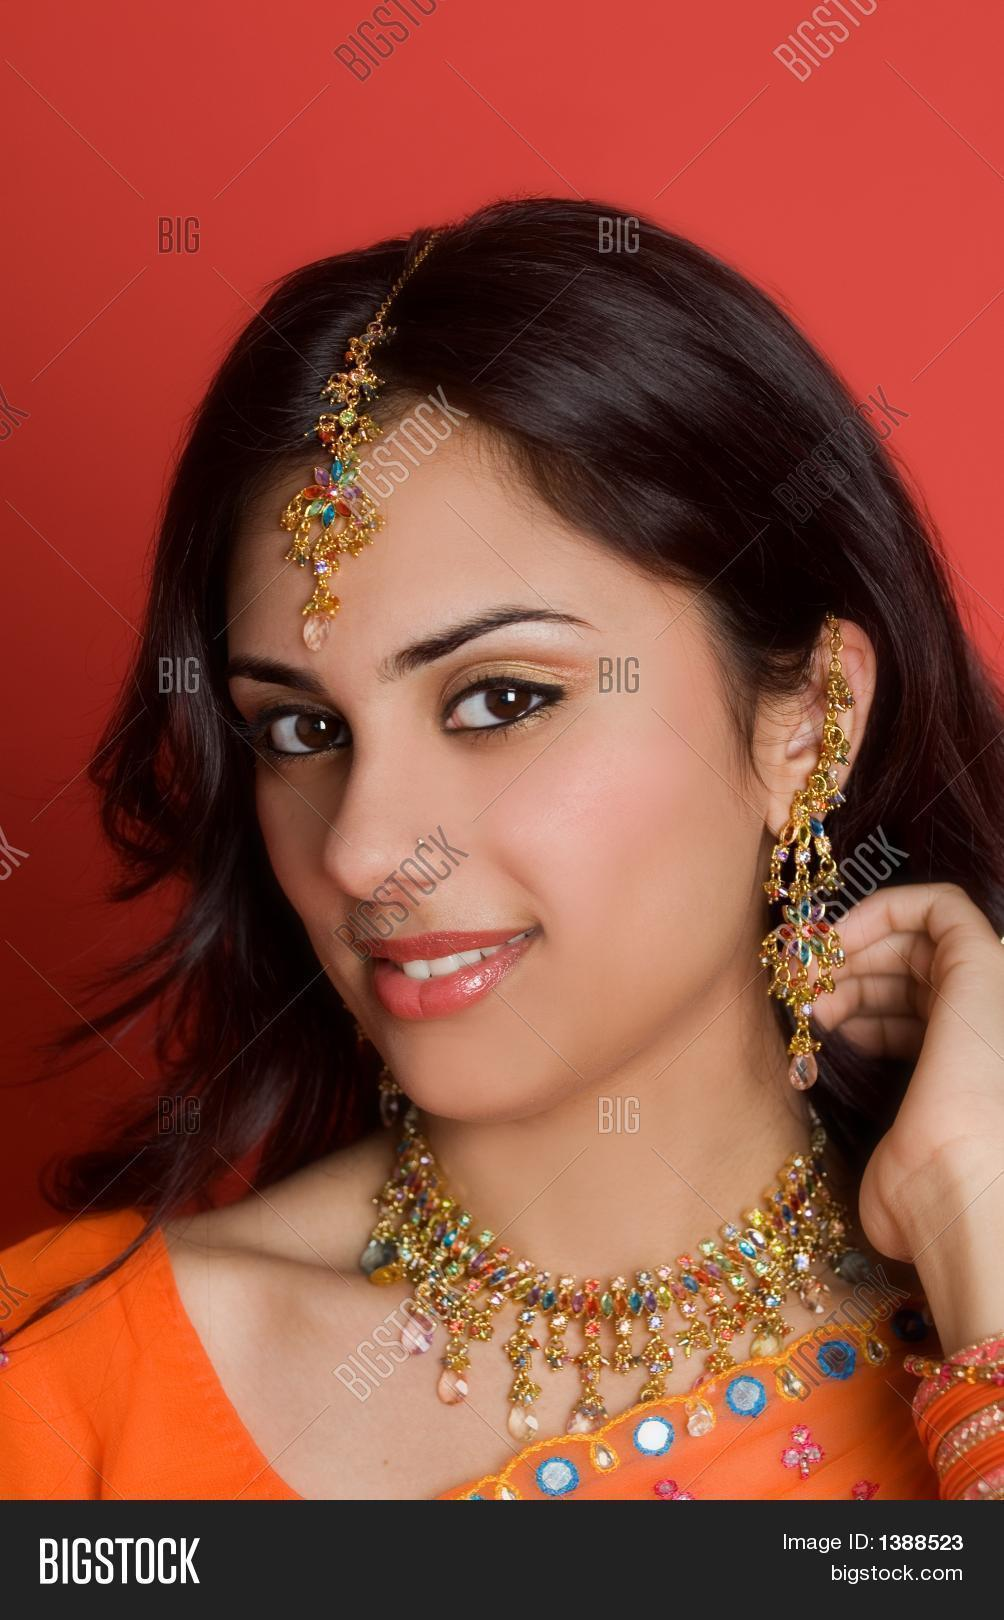 hindu single women in checotah Religion: hindu 49, sydney - hills, nsw i'm still working on my profile you can get in contact by sending a free kiss you can get in contact by sending a free kiss.